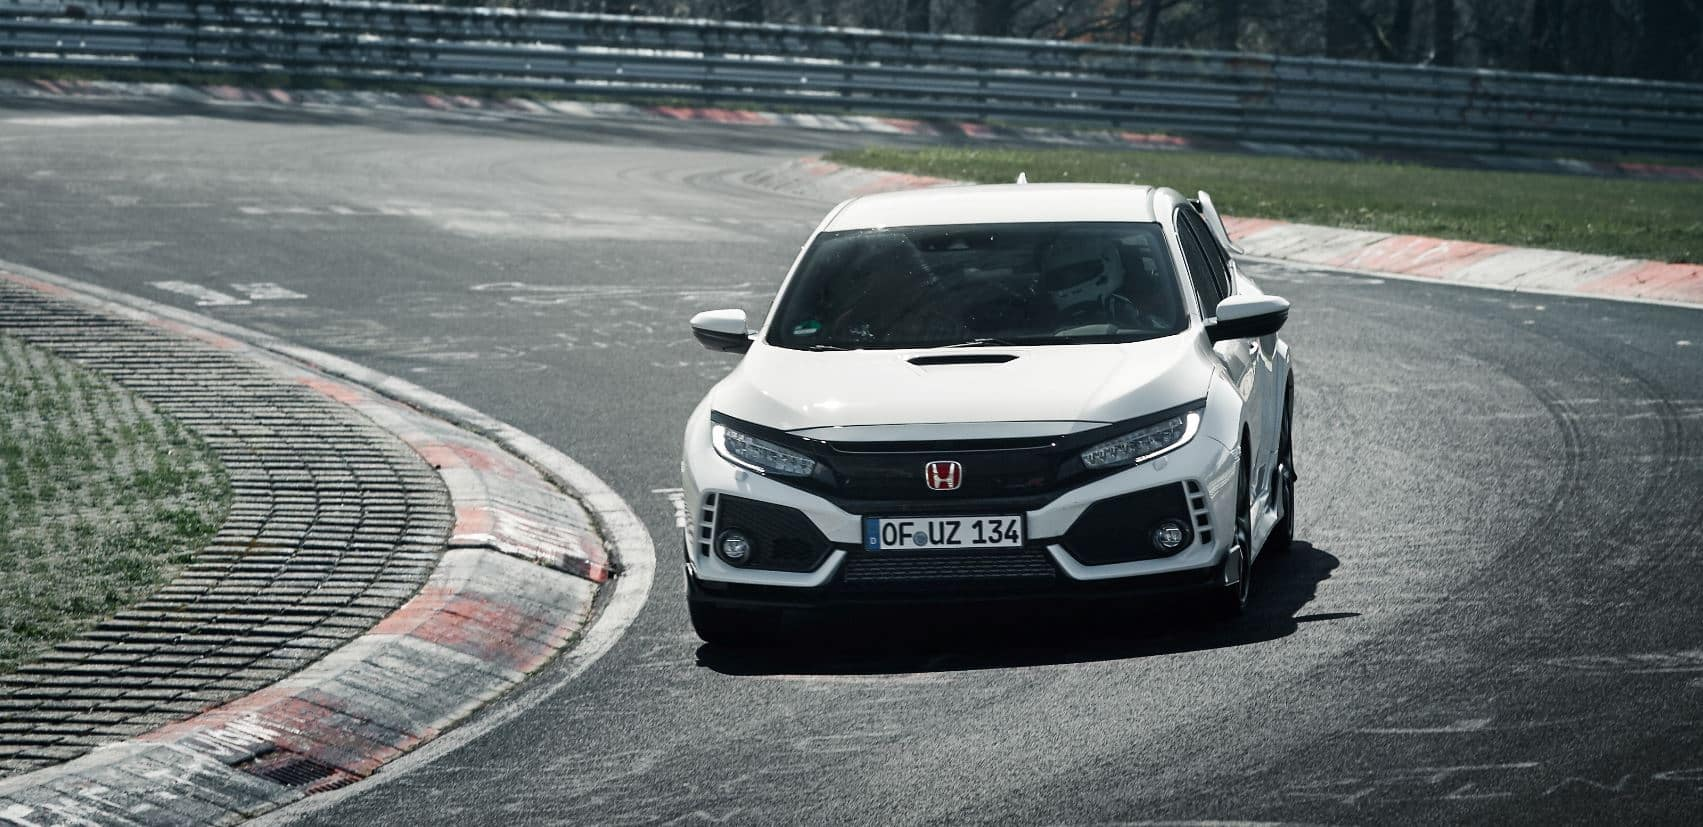 honda civic type r Nürburgring 1